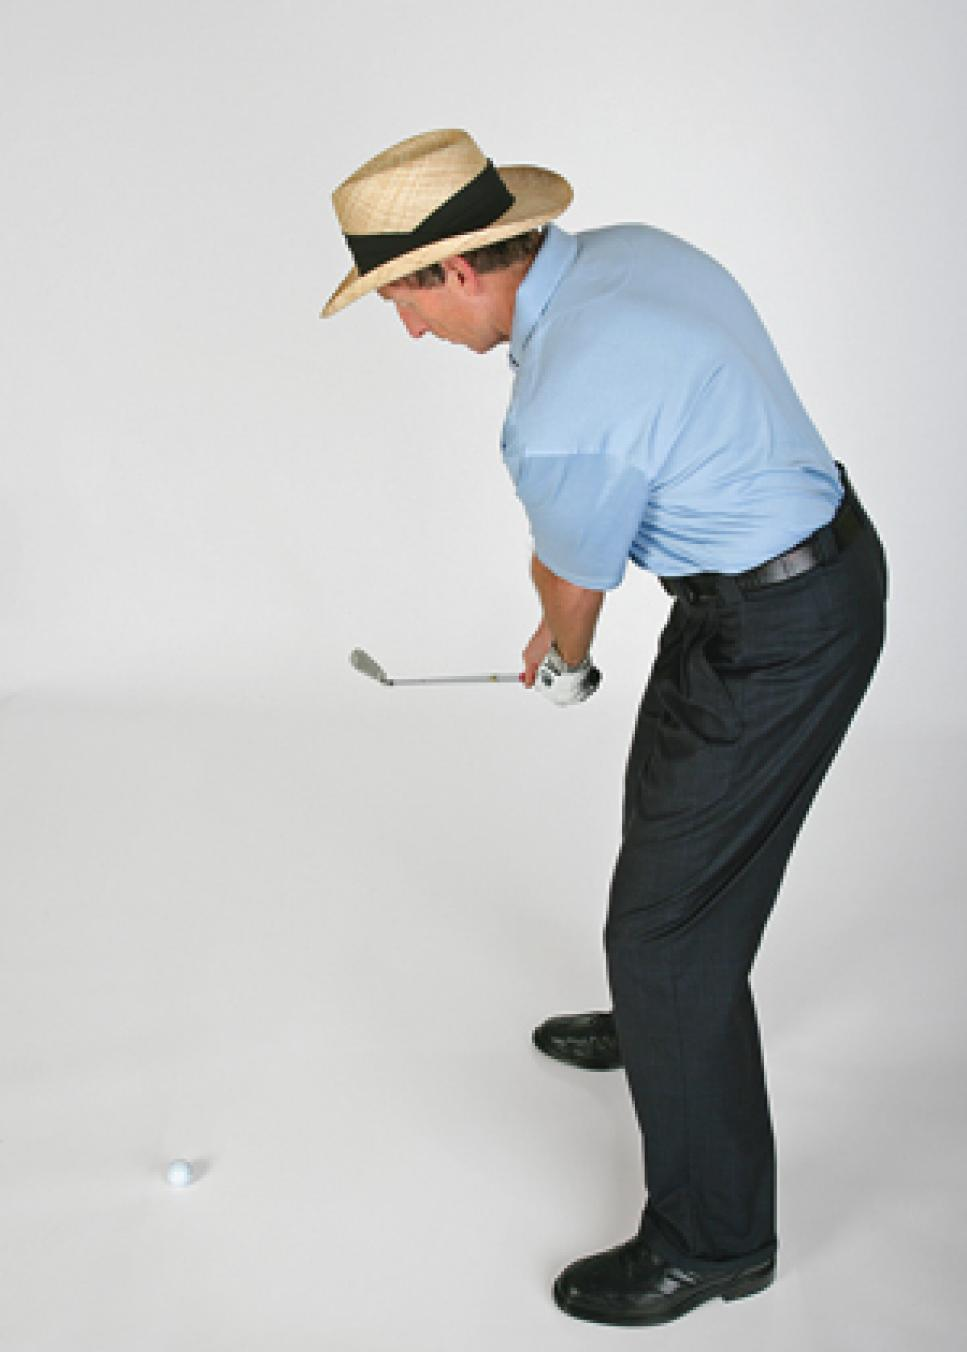 instruction-2014-04-inar01-david-leadbetter-backswing.jpg